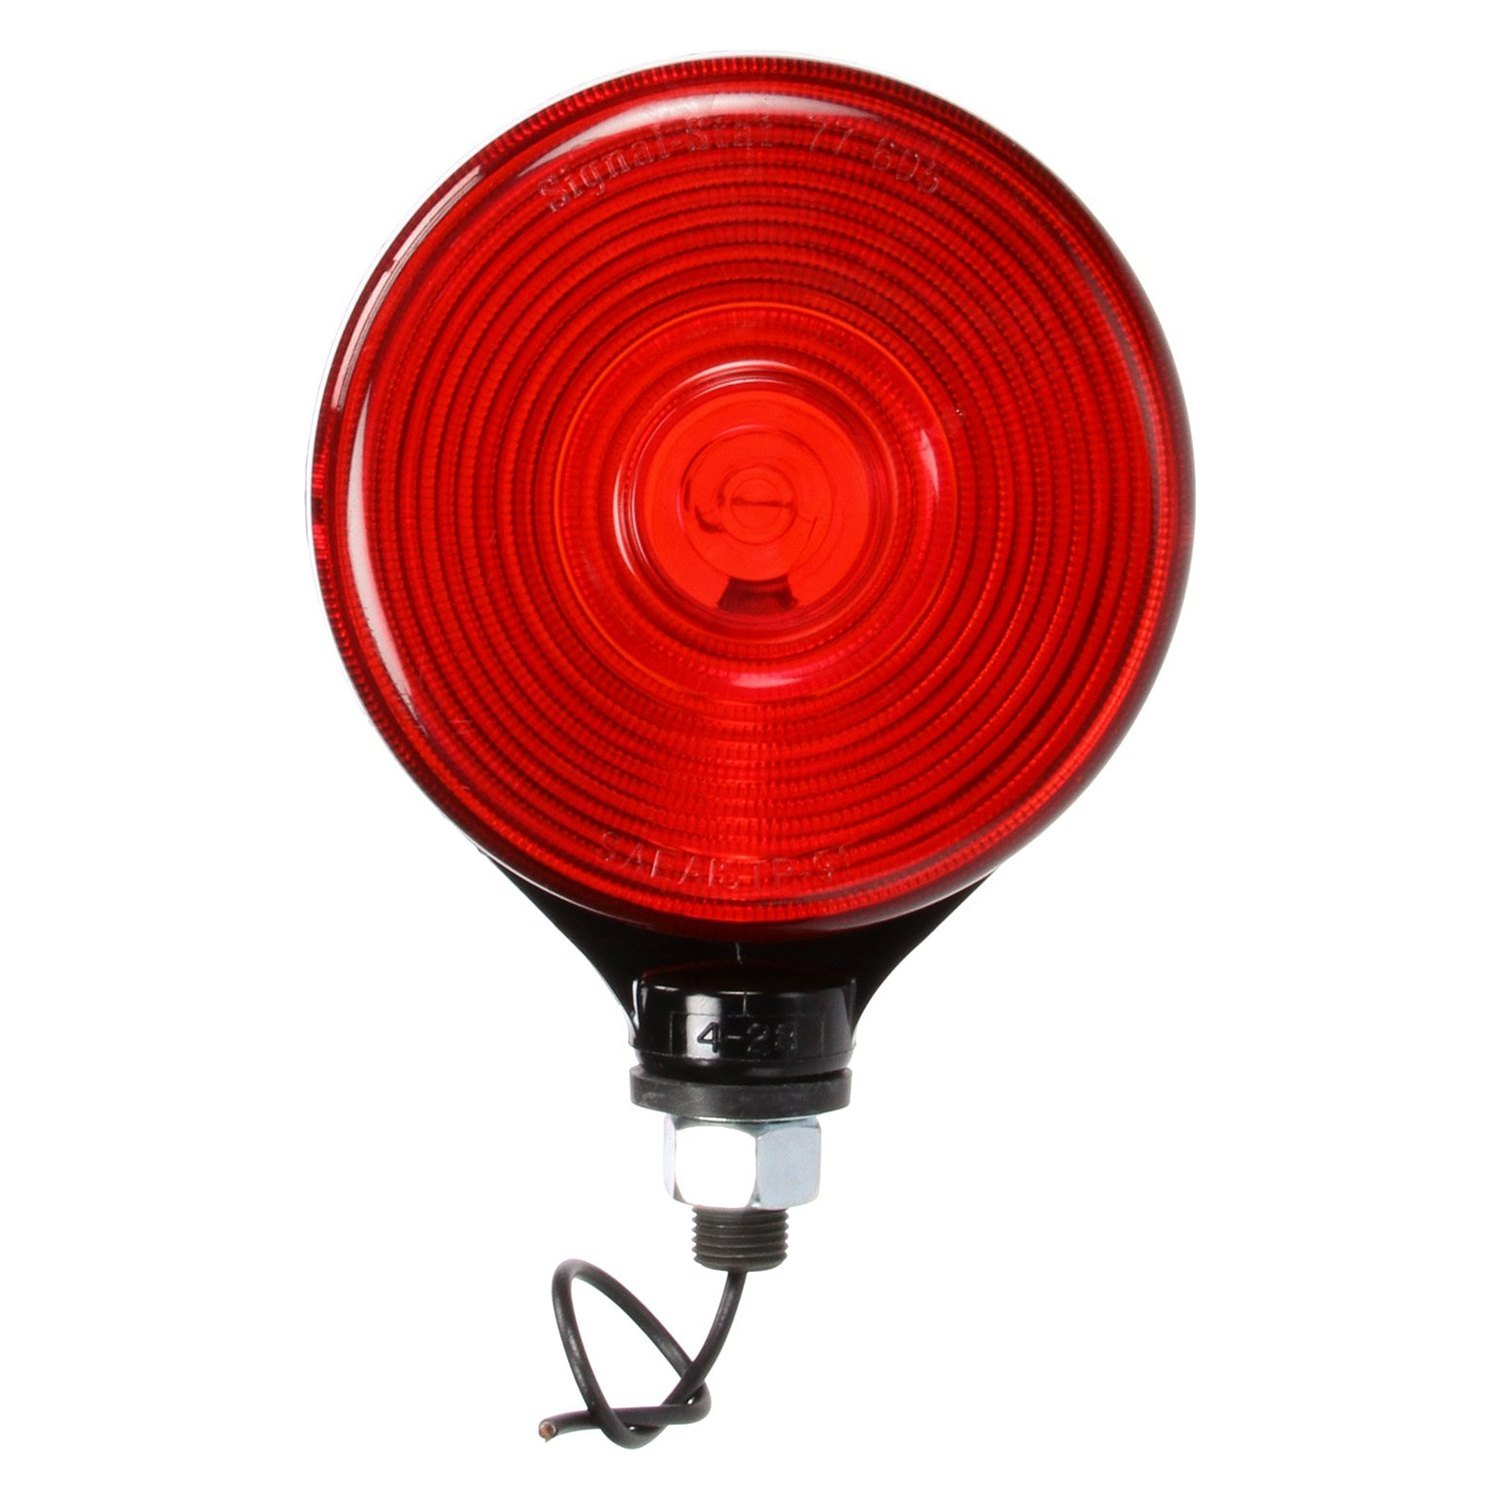 Red Truck Lamp : Truck lite signal stat red yellow round dual face